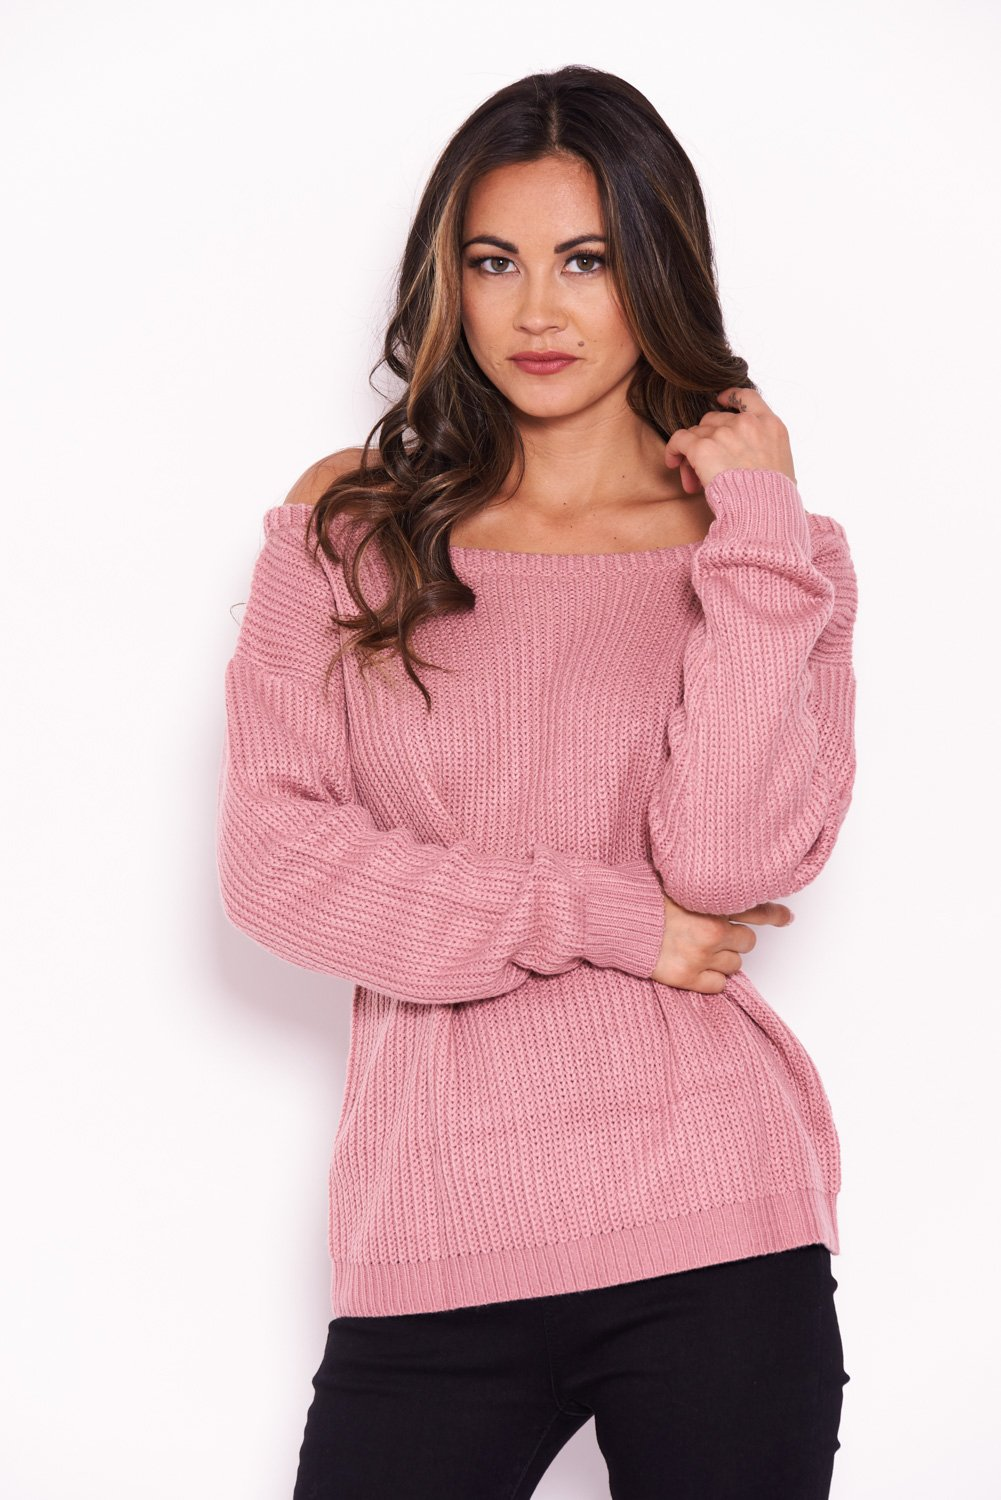 467cd0ba9ee AX Paris Womens Pink Cosy Jumper Ladies Casual Knitted Top